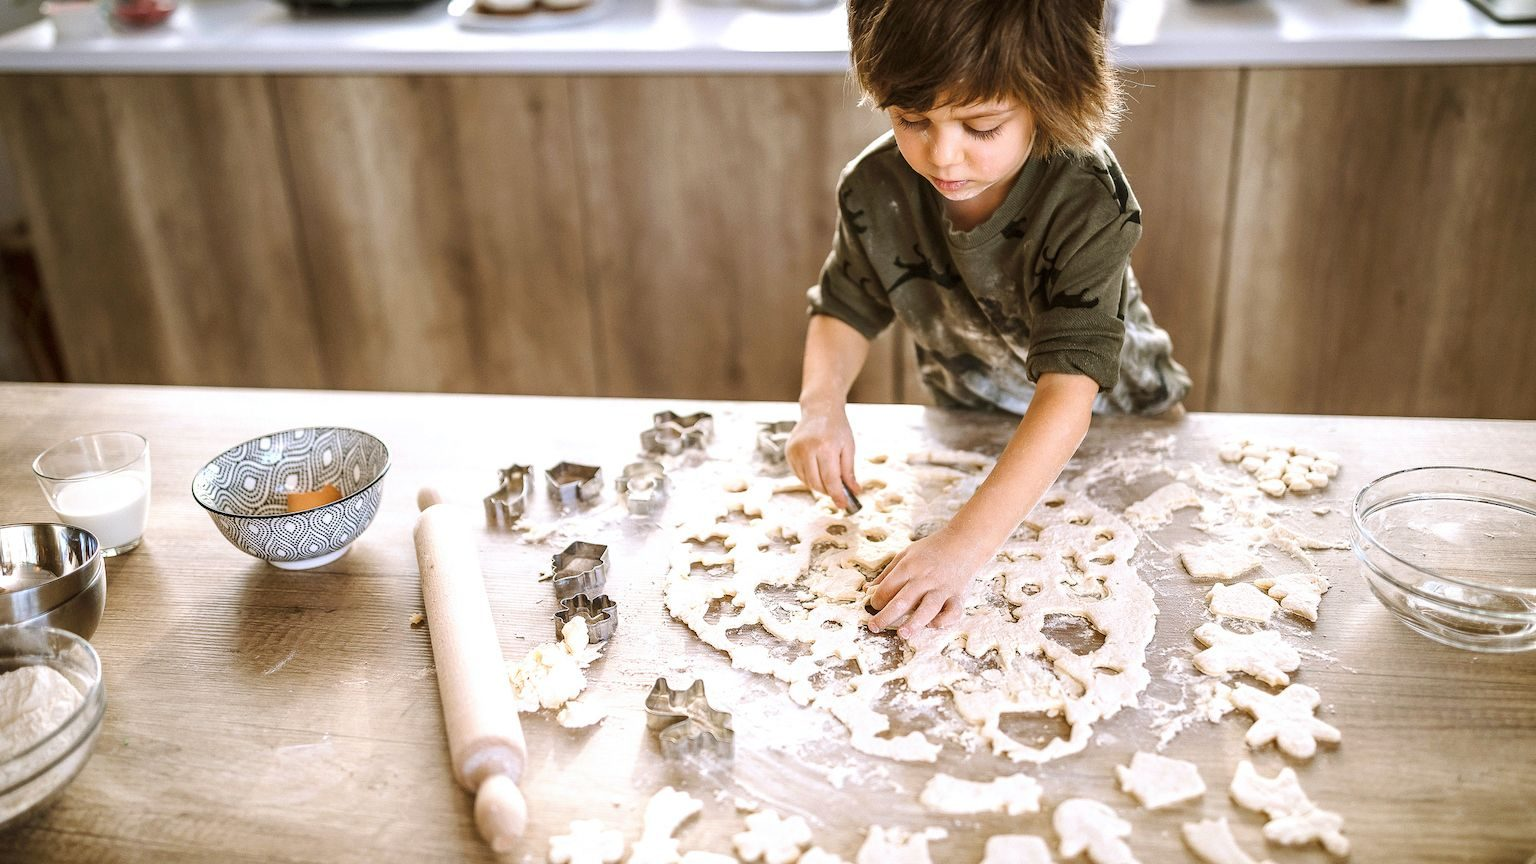 A young boy shaping cookies with a cookie cutter